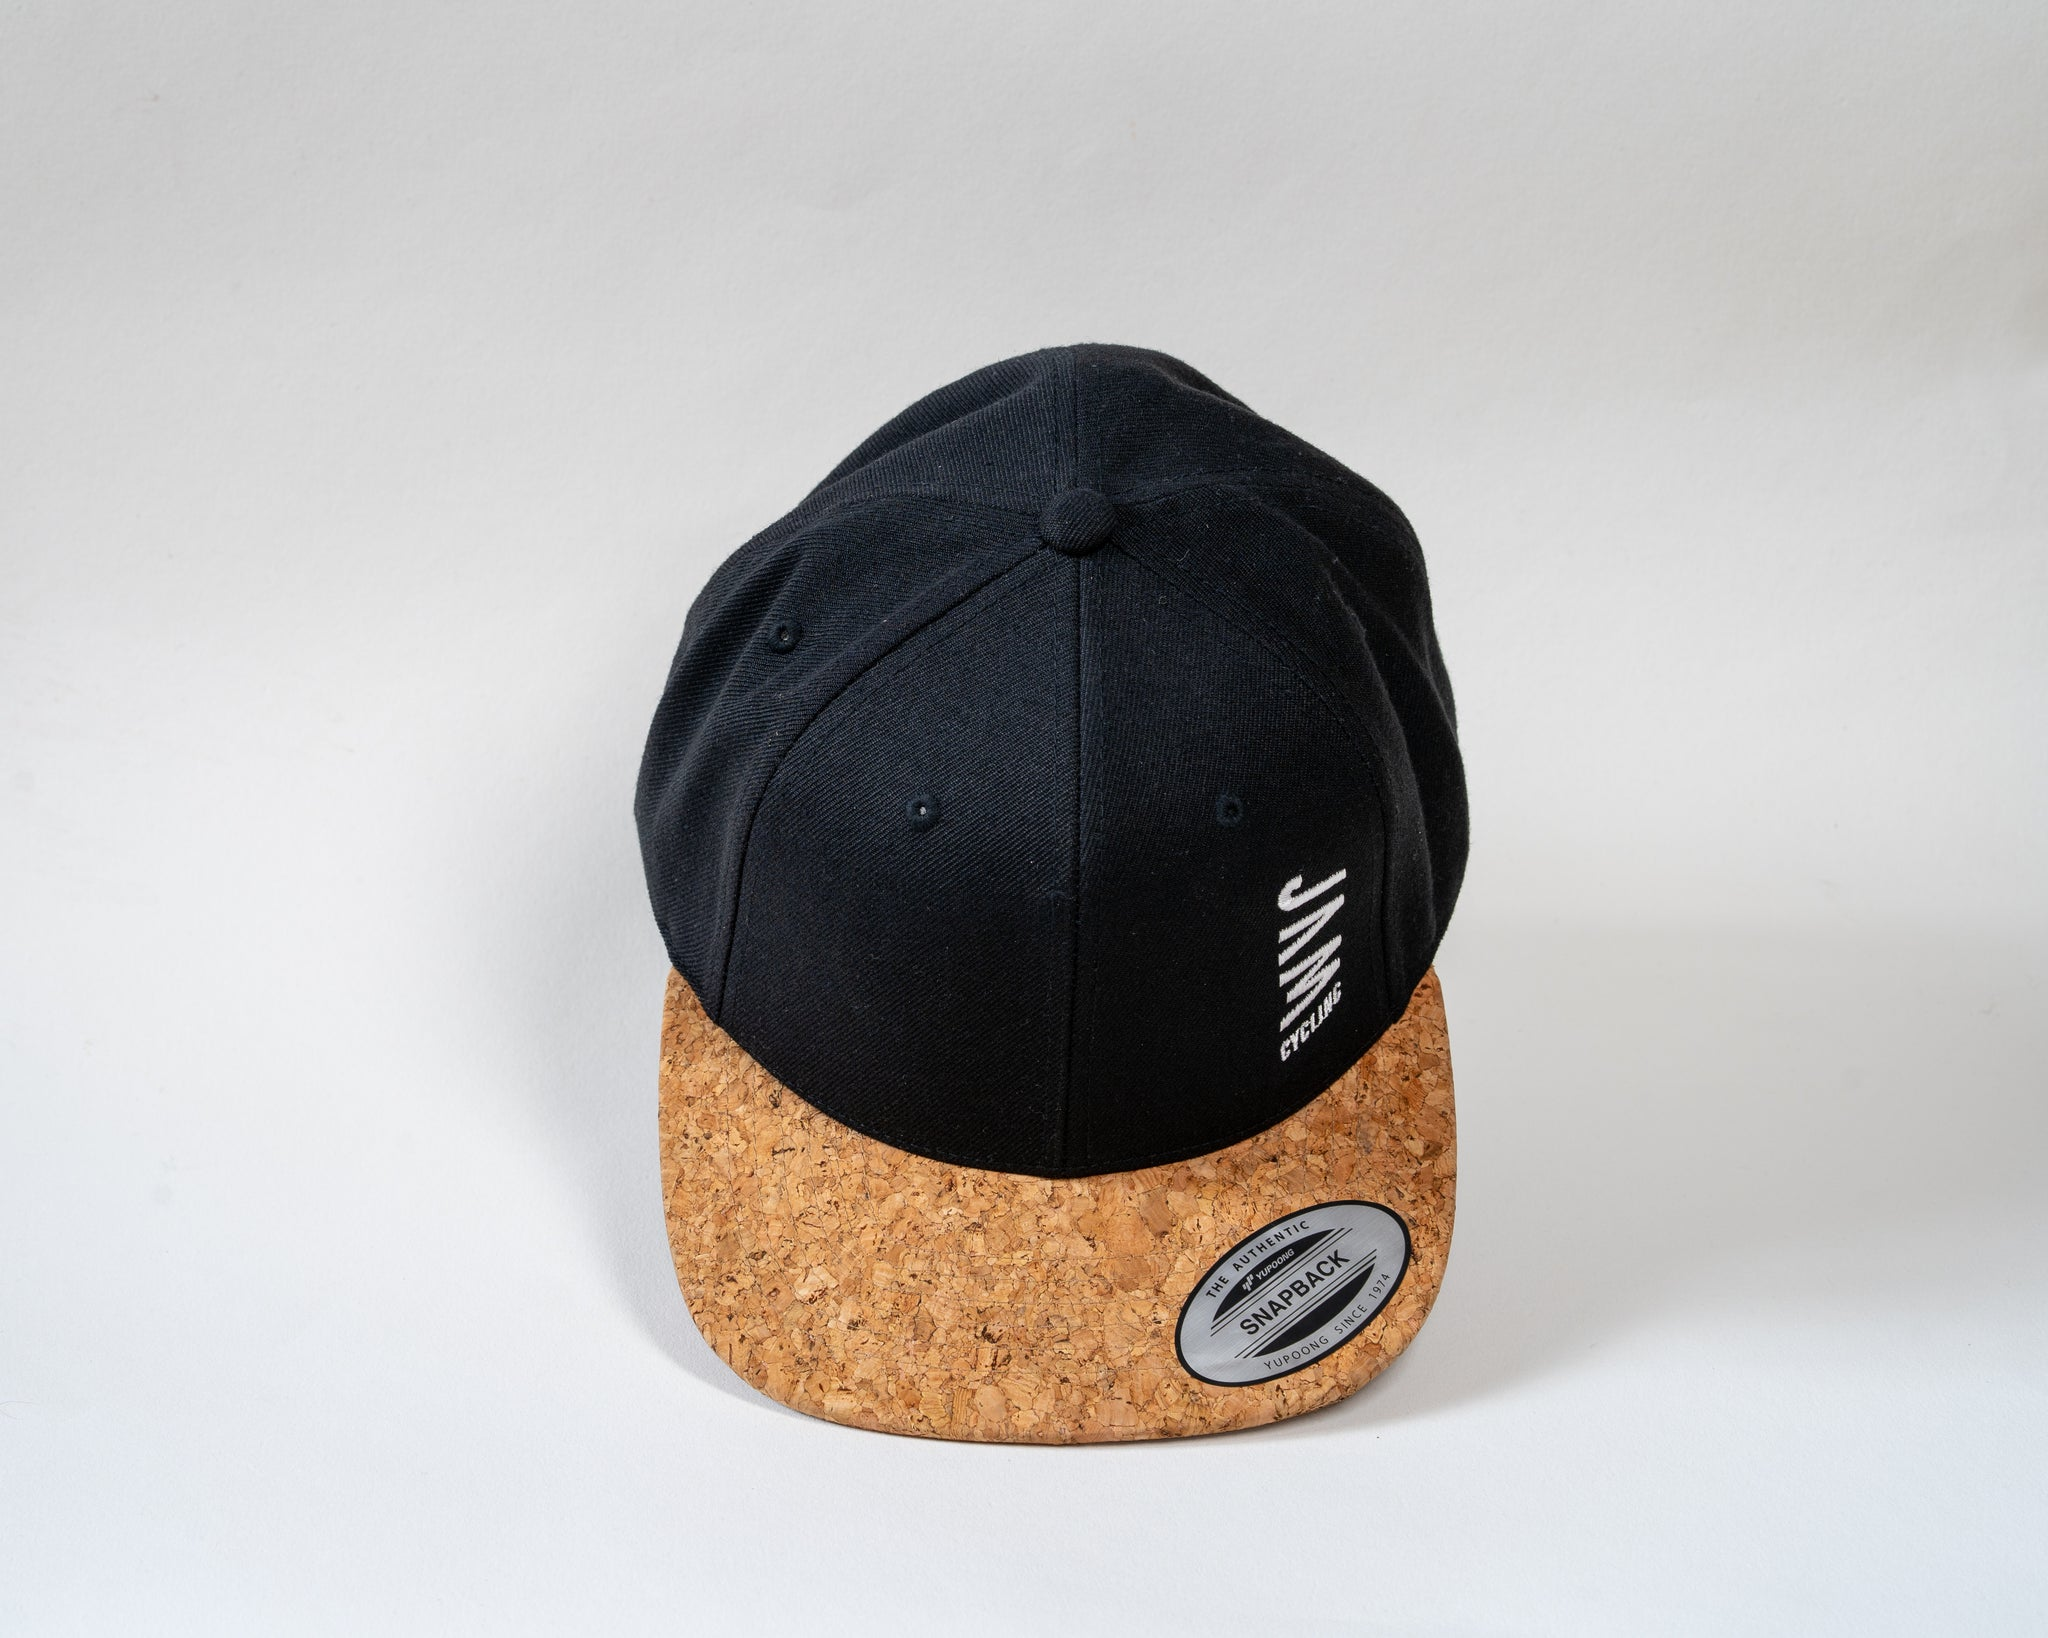 JAM snap back cap featuring cork peak stitched JAM logo floating on a white background